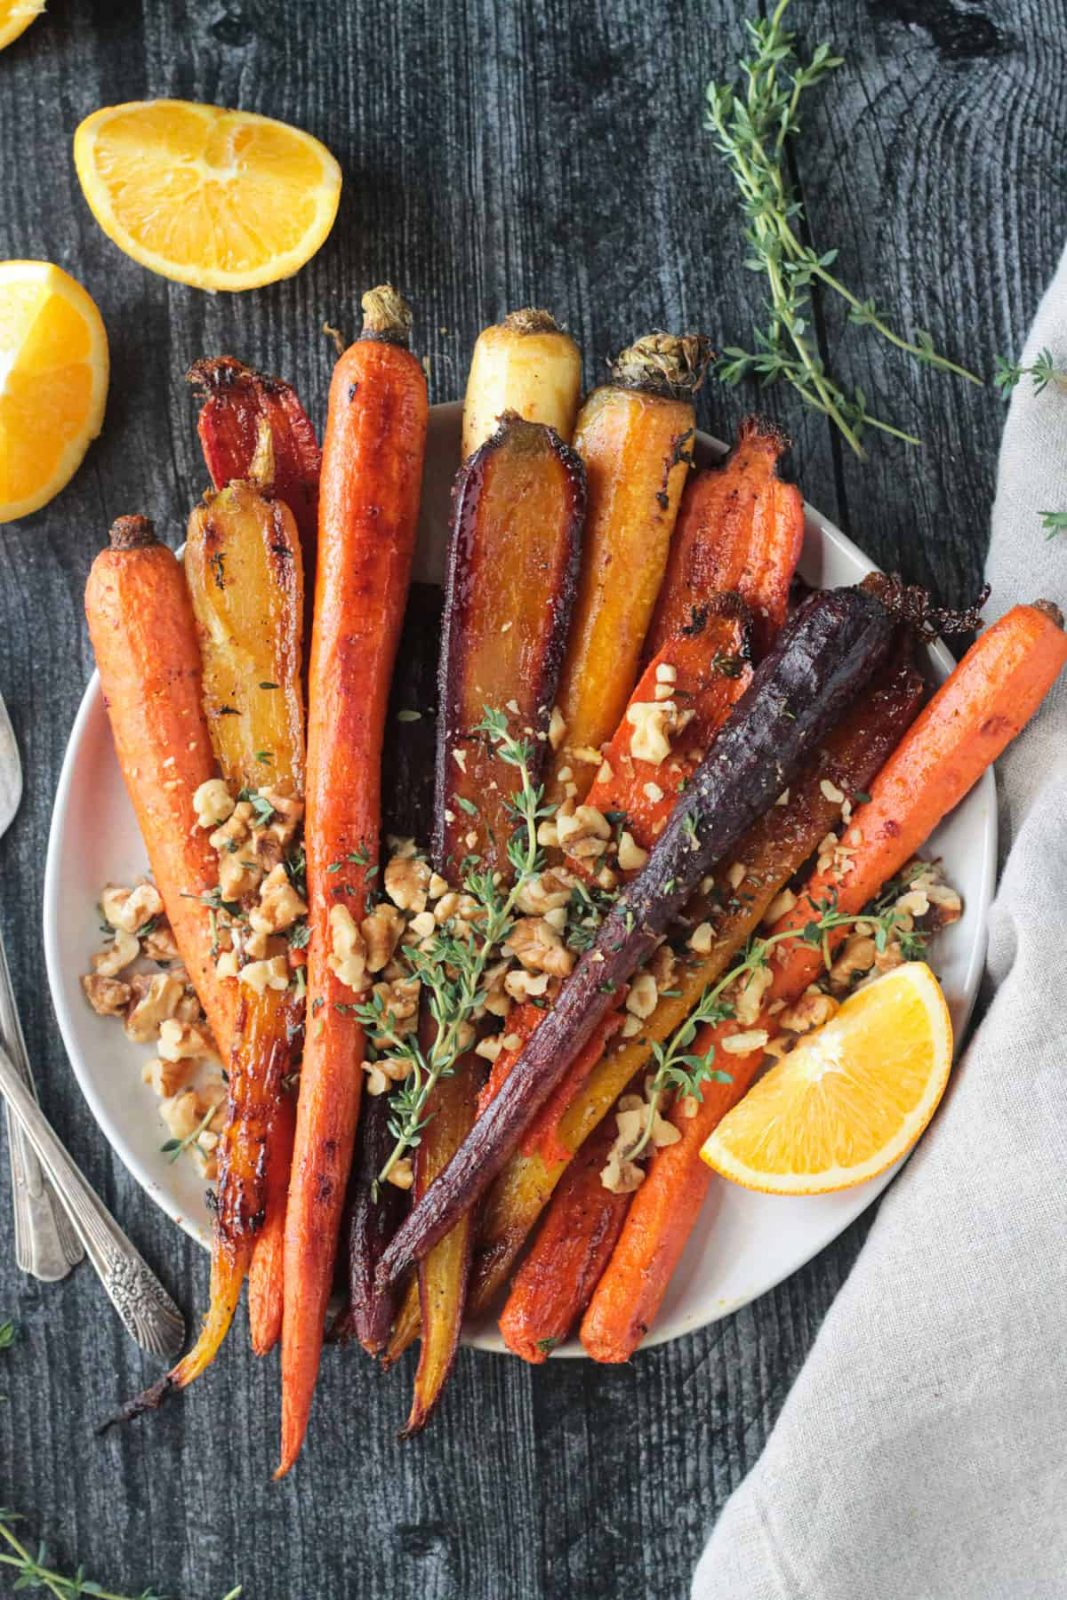 These oven roasted rainbow carrots make a beautiful Thanksgiving side dish.